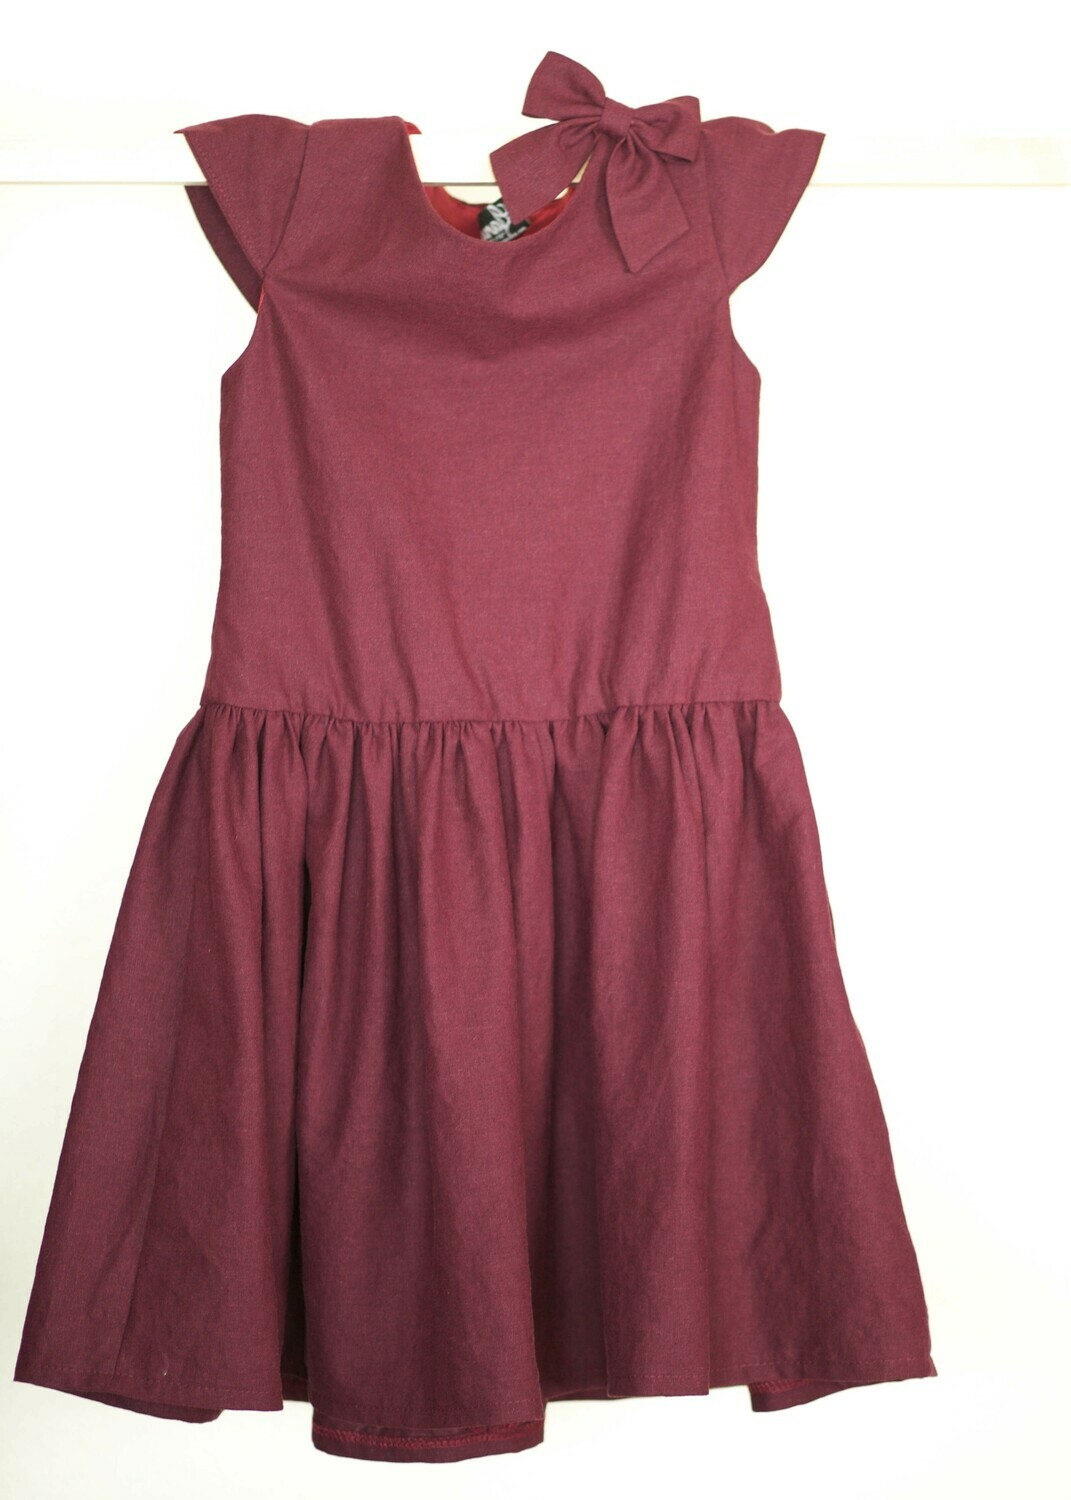 Beth Dress in Mulberry